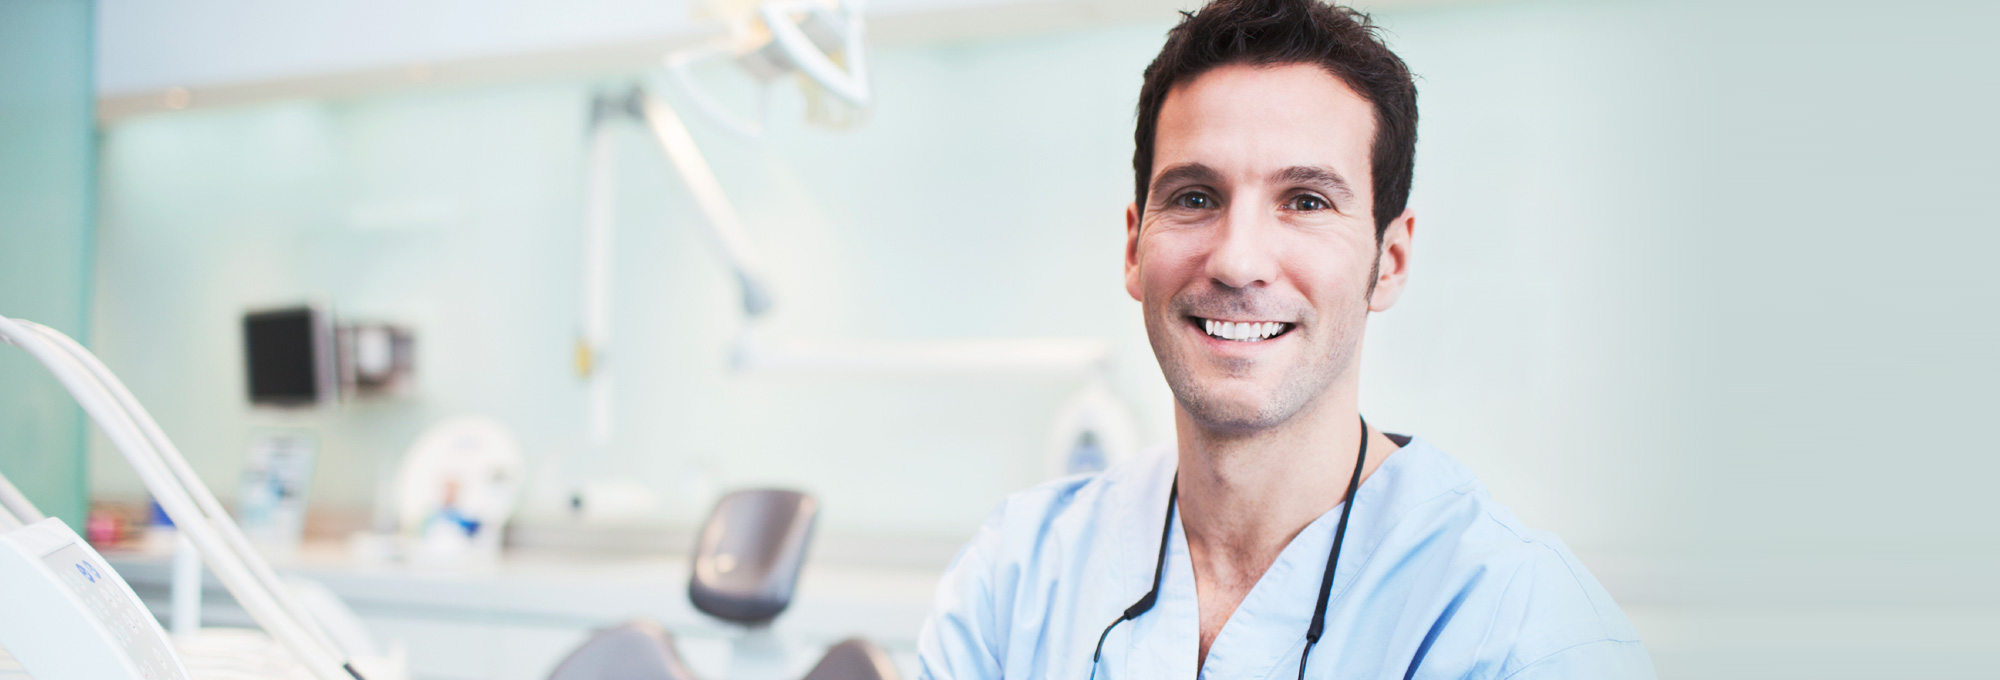 how to become a dentist from a dental hygienist